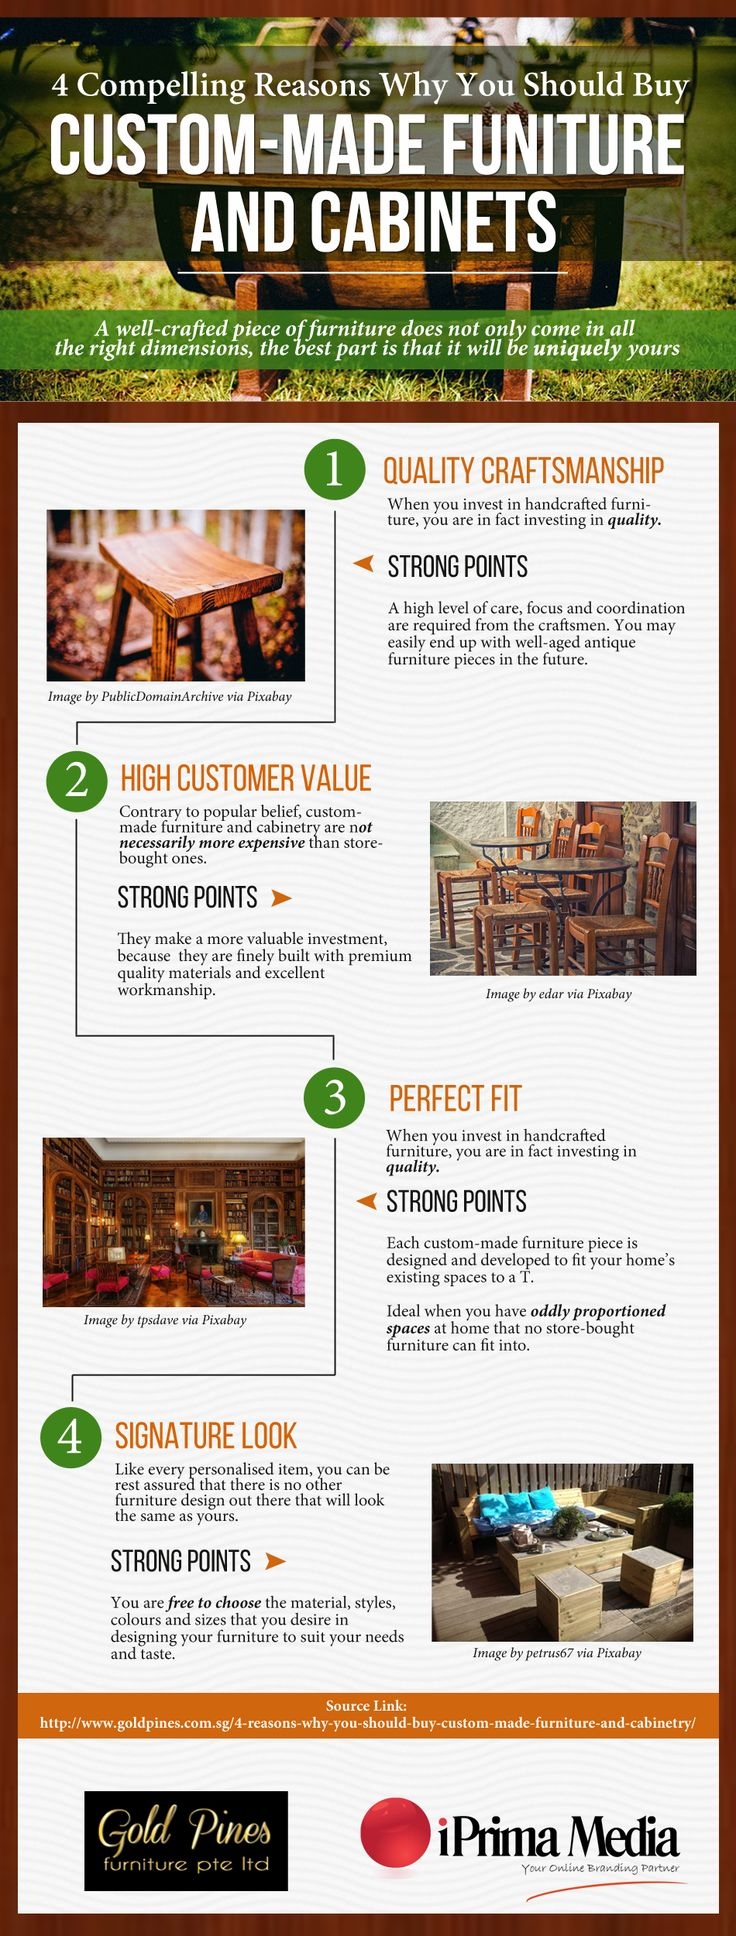 Today, there is a new costumers preference for custom-made furniture and cabinets in Singapore. From mass produced furniture, buyers' preference has shifted to to custom built furniture and cabinetry. Here are 4 compelling reasons, why a custom-made furniture and cabinet is worth your investment.   You can read up on the full article here http://www.goldpines.com.sg/4-reasons-why-you-should-buy-custom-made-furniture-and-cabinetry/